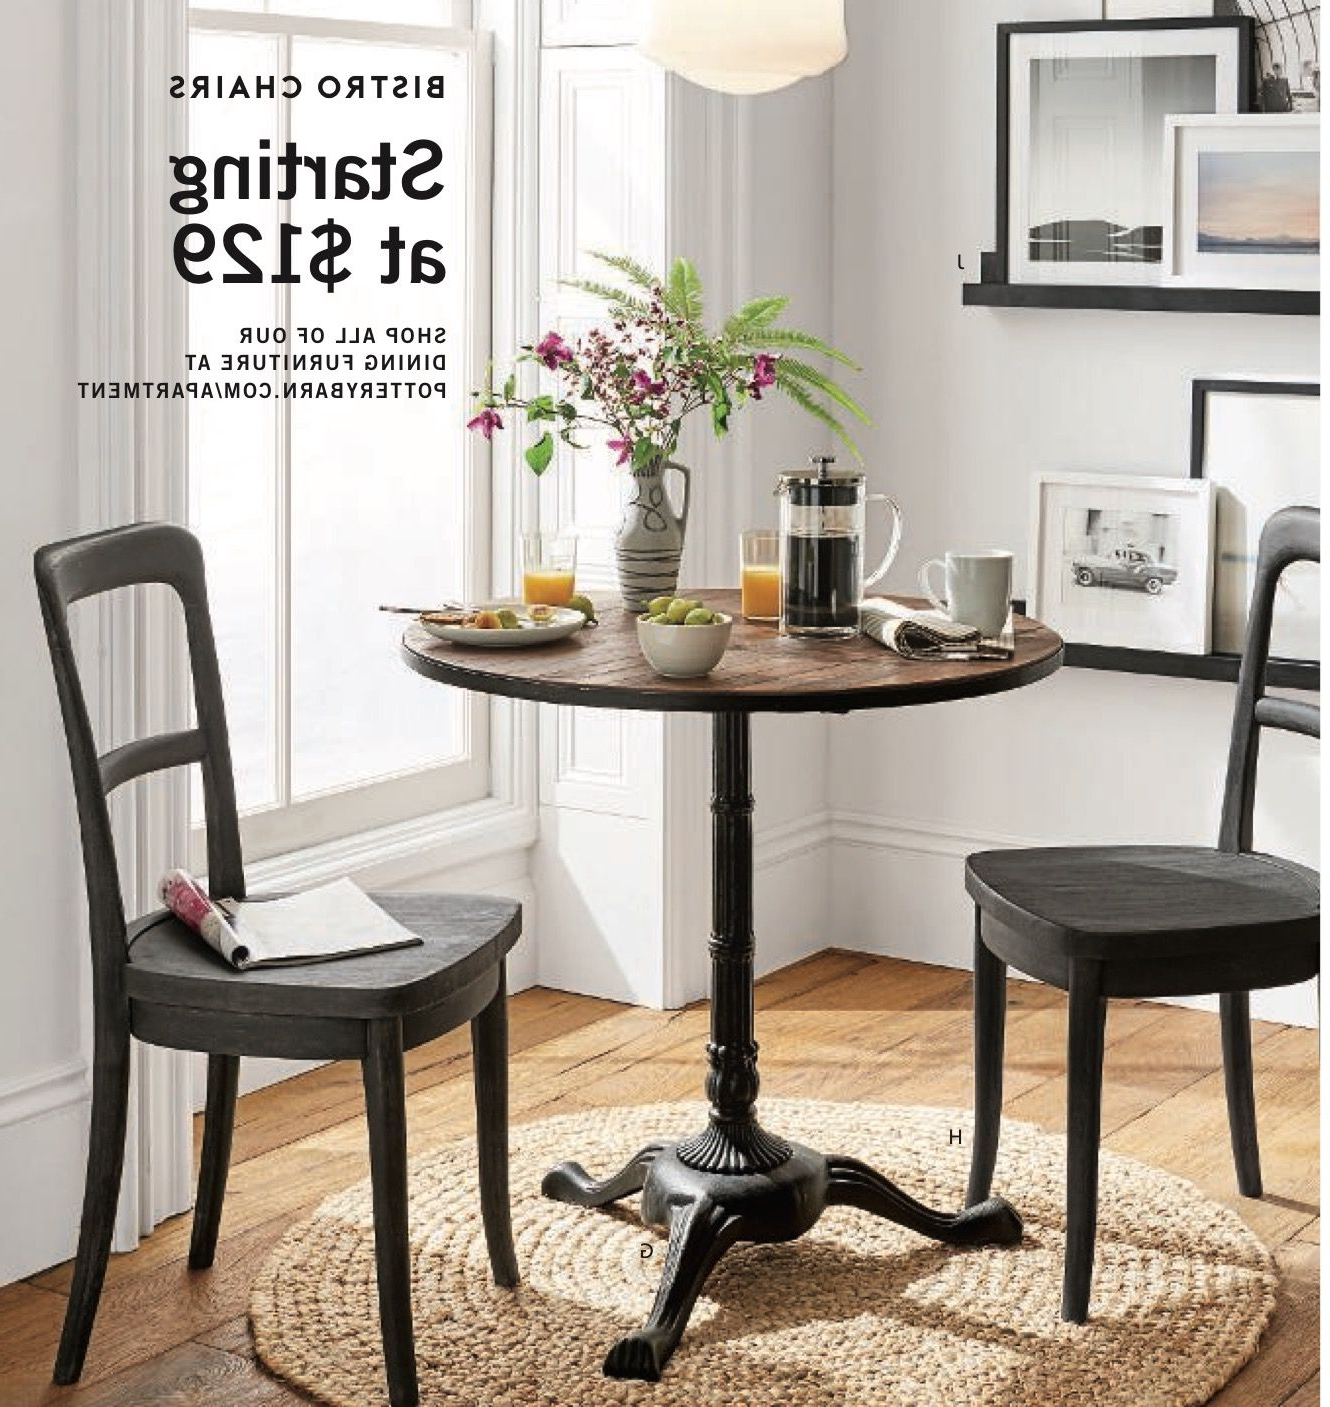 Rae Bistro Table, Cline Bistro Chairs, Round Jute Rug for Recent Rae Round Pedestal Dining Tables